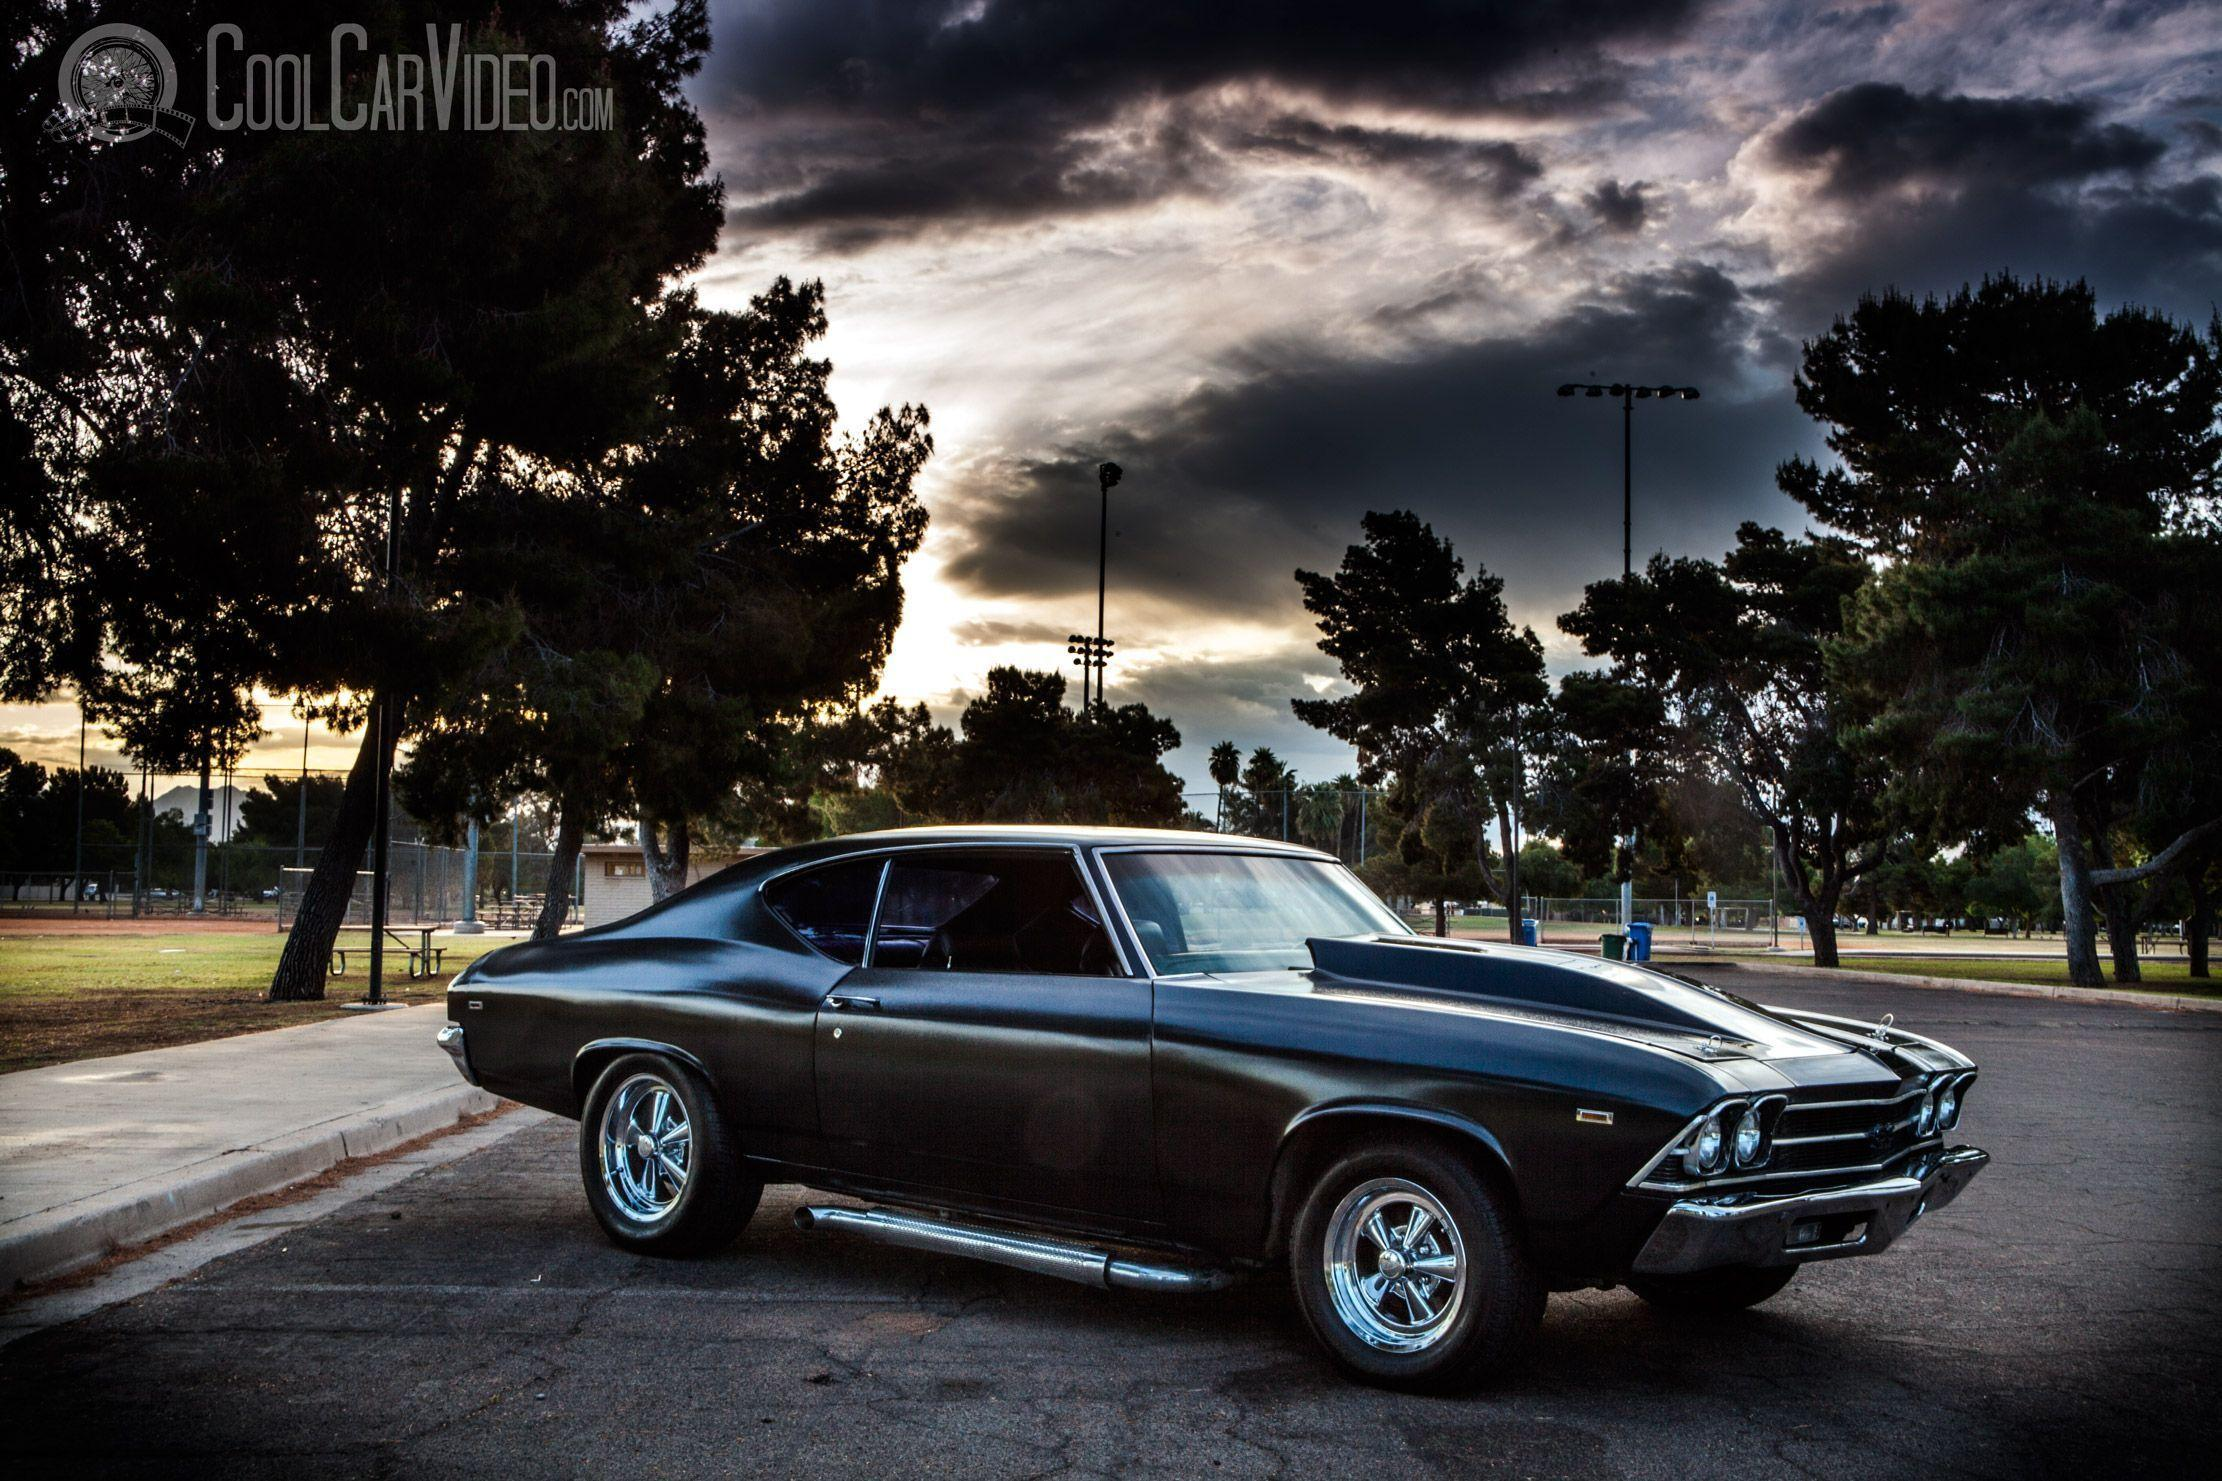 Chevelle Wallpaper on chevy malibu muscle car